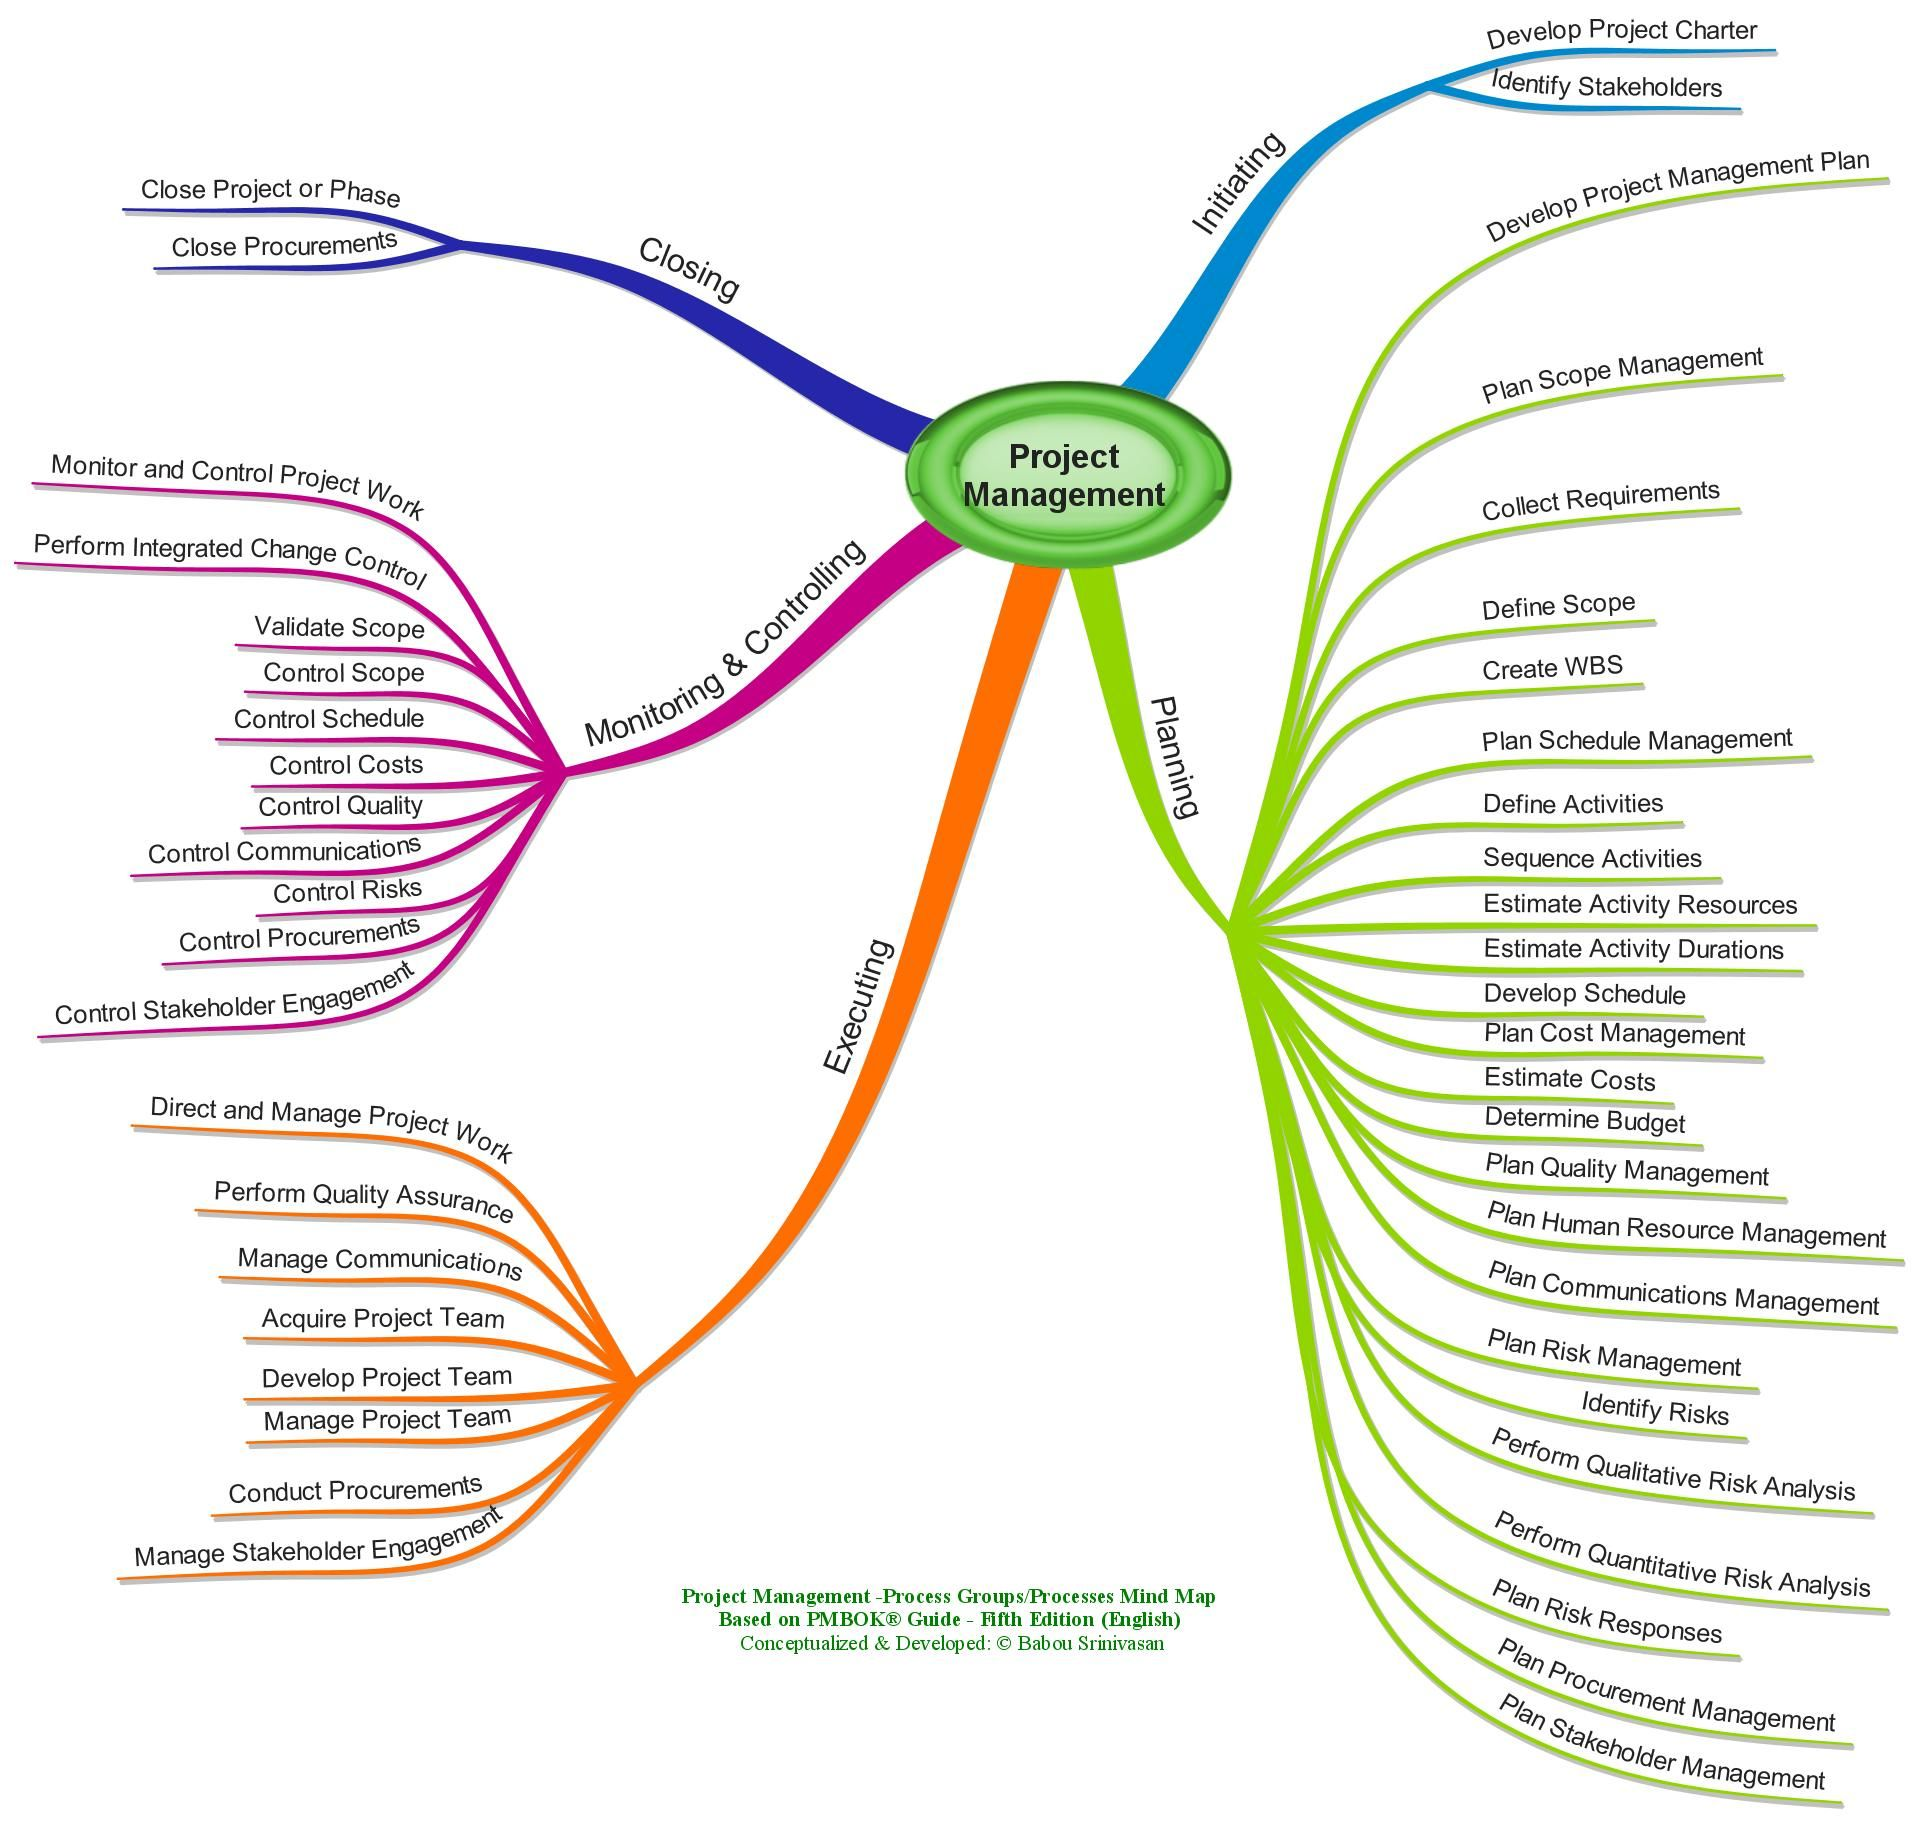 Project management mind maps project management management and project management mind maps xflitez Image collections